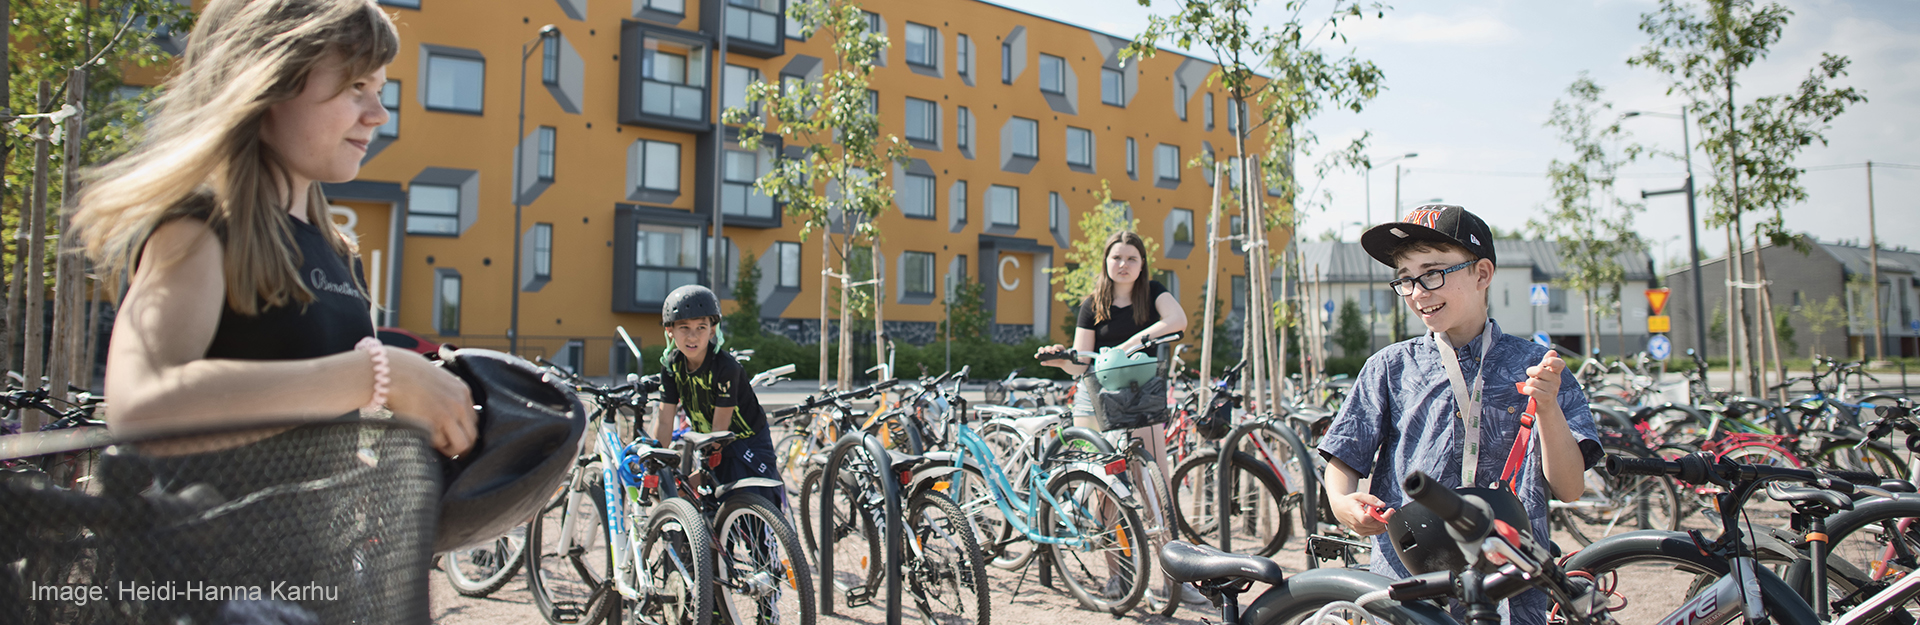 The UN selects Espoo as a sustainability pioneer